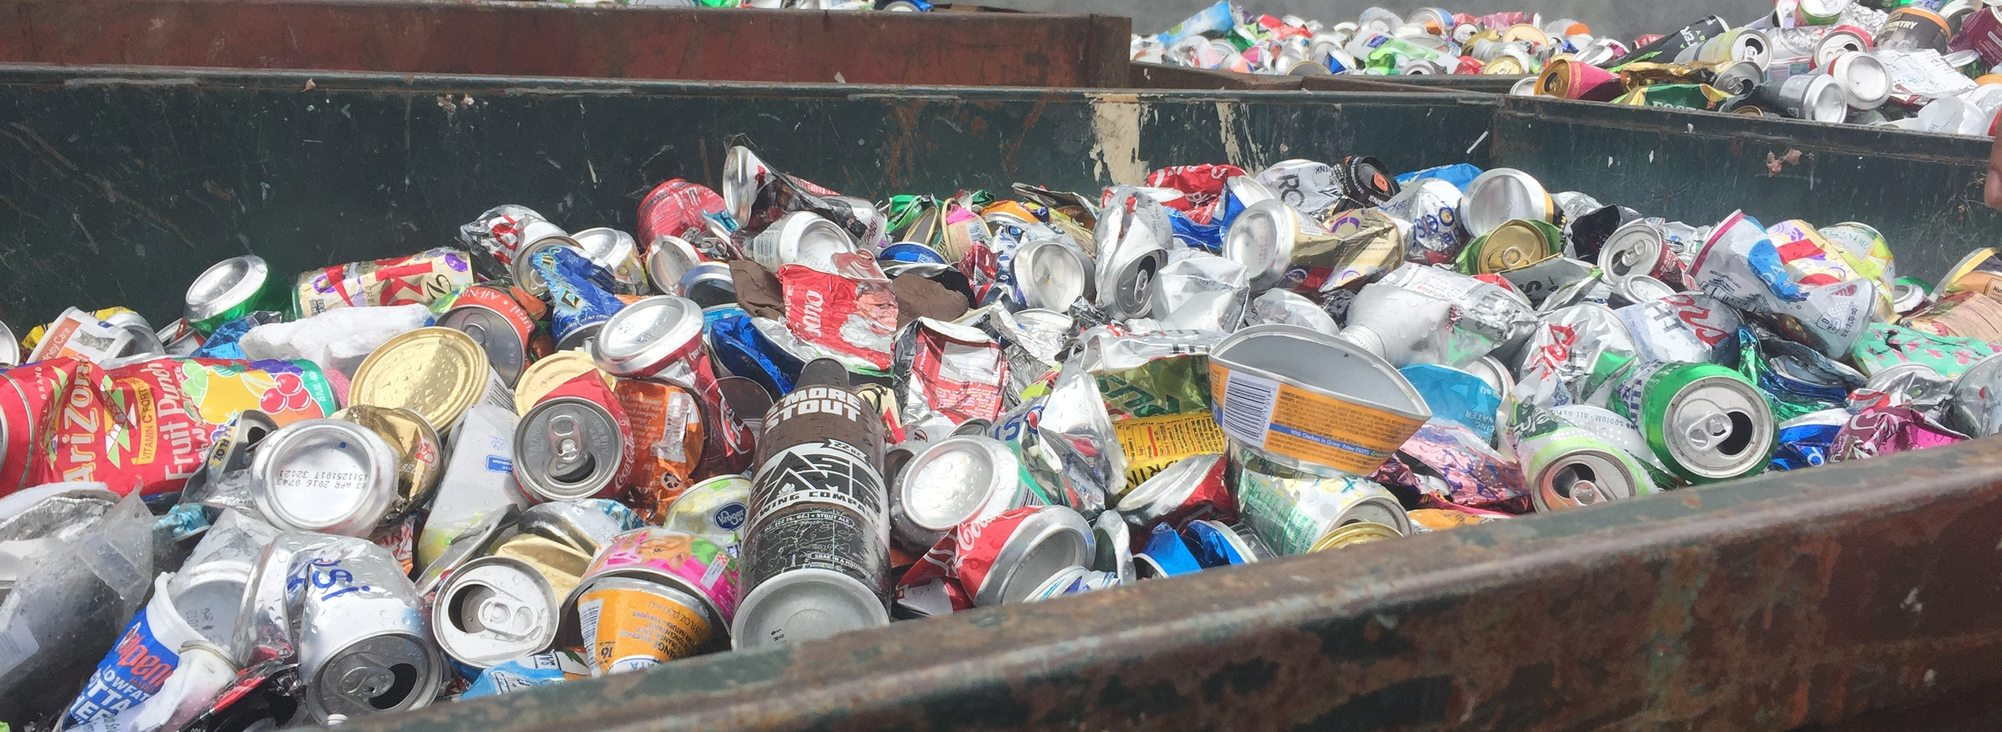 photo of aluminum cans in recycling bin